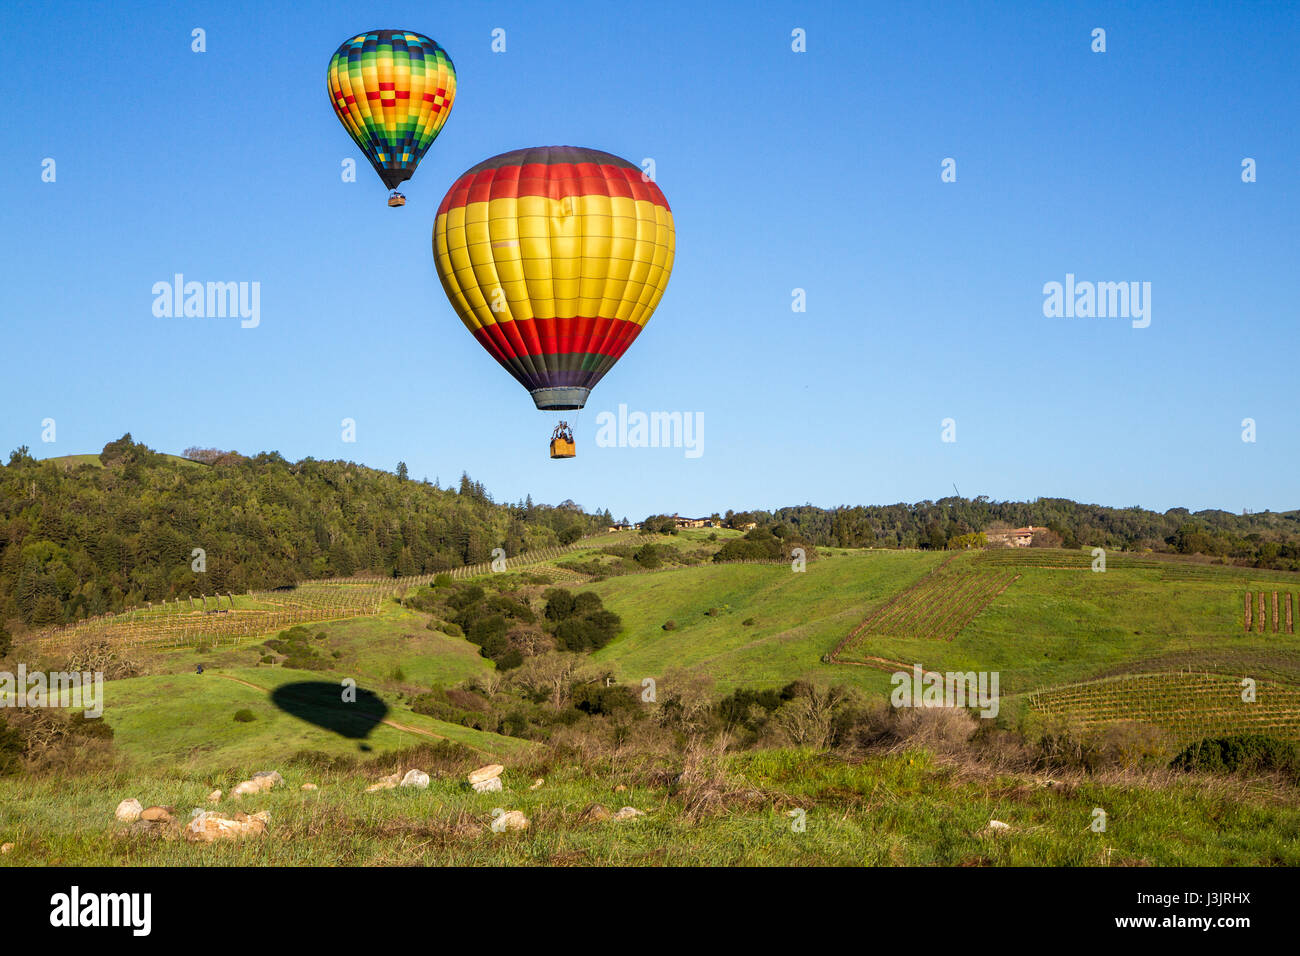 Hot air balloons over Napa Valley vineyards at sunrise with blue sky and copy space. - Stock Image